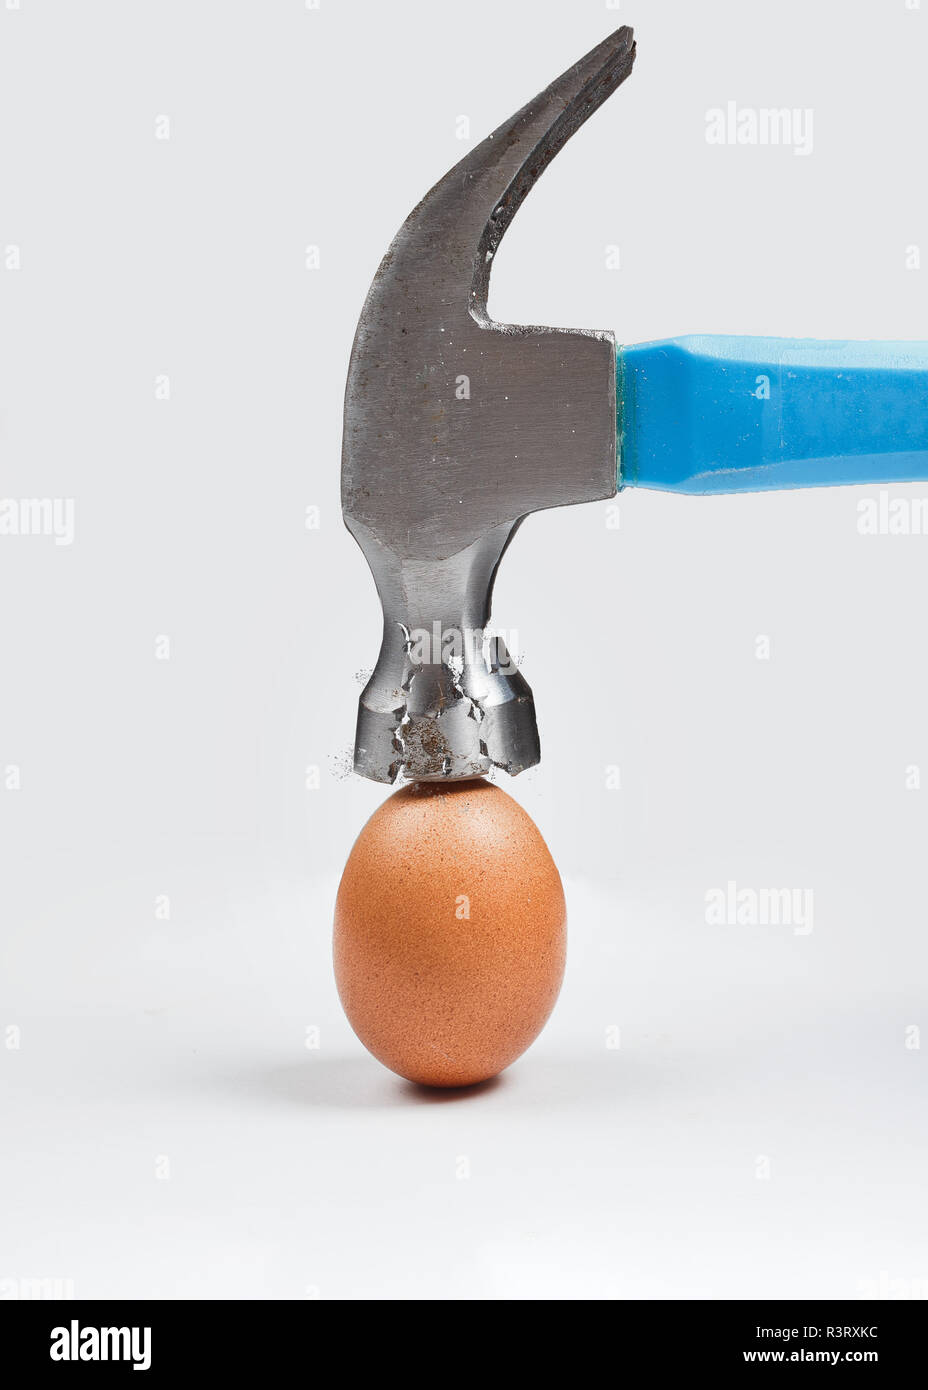 Hammer is breaking chicken egg. Concept of strength, durability, stress resistance and fortitude. - Stock Image